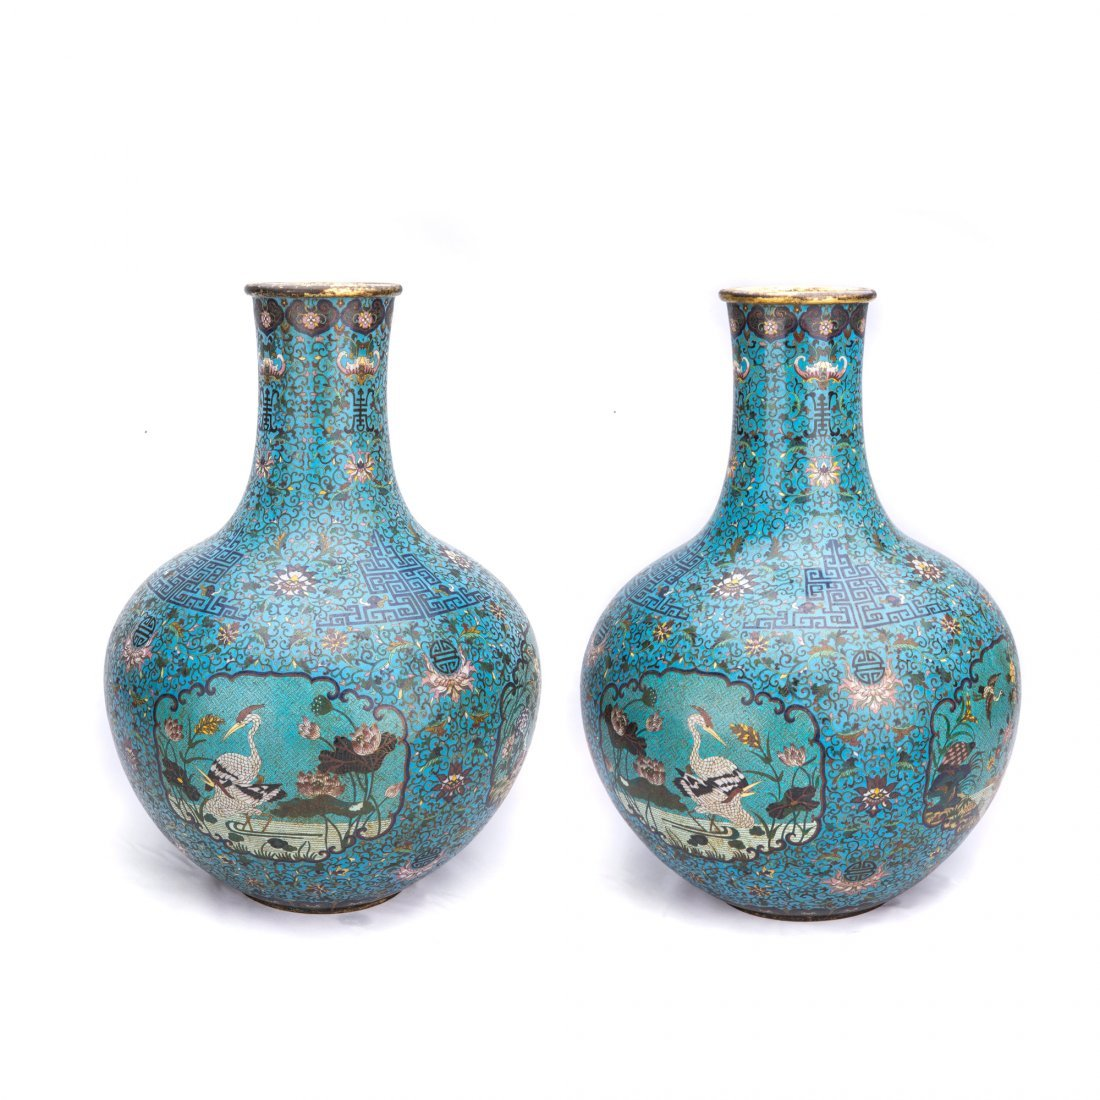 Pair of Large Chinese Cloisonna Vases